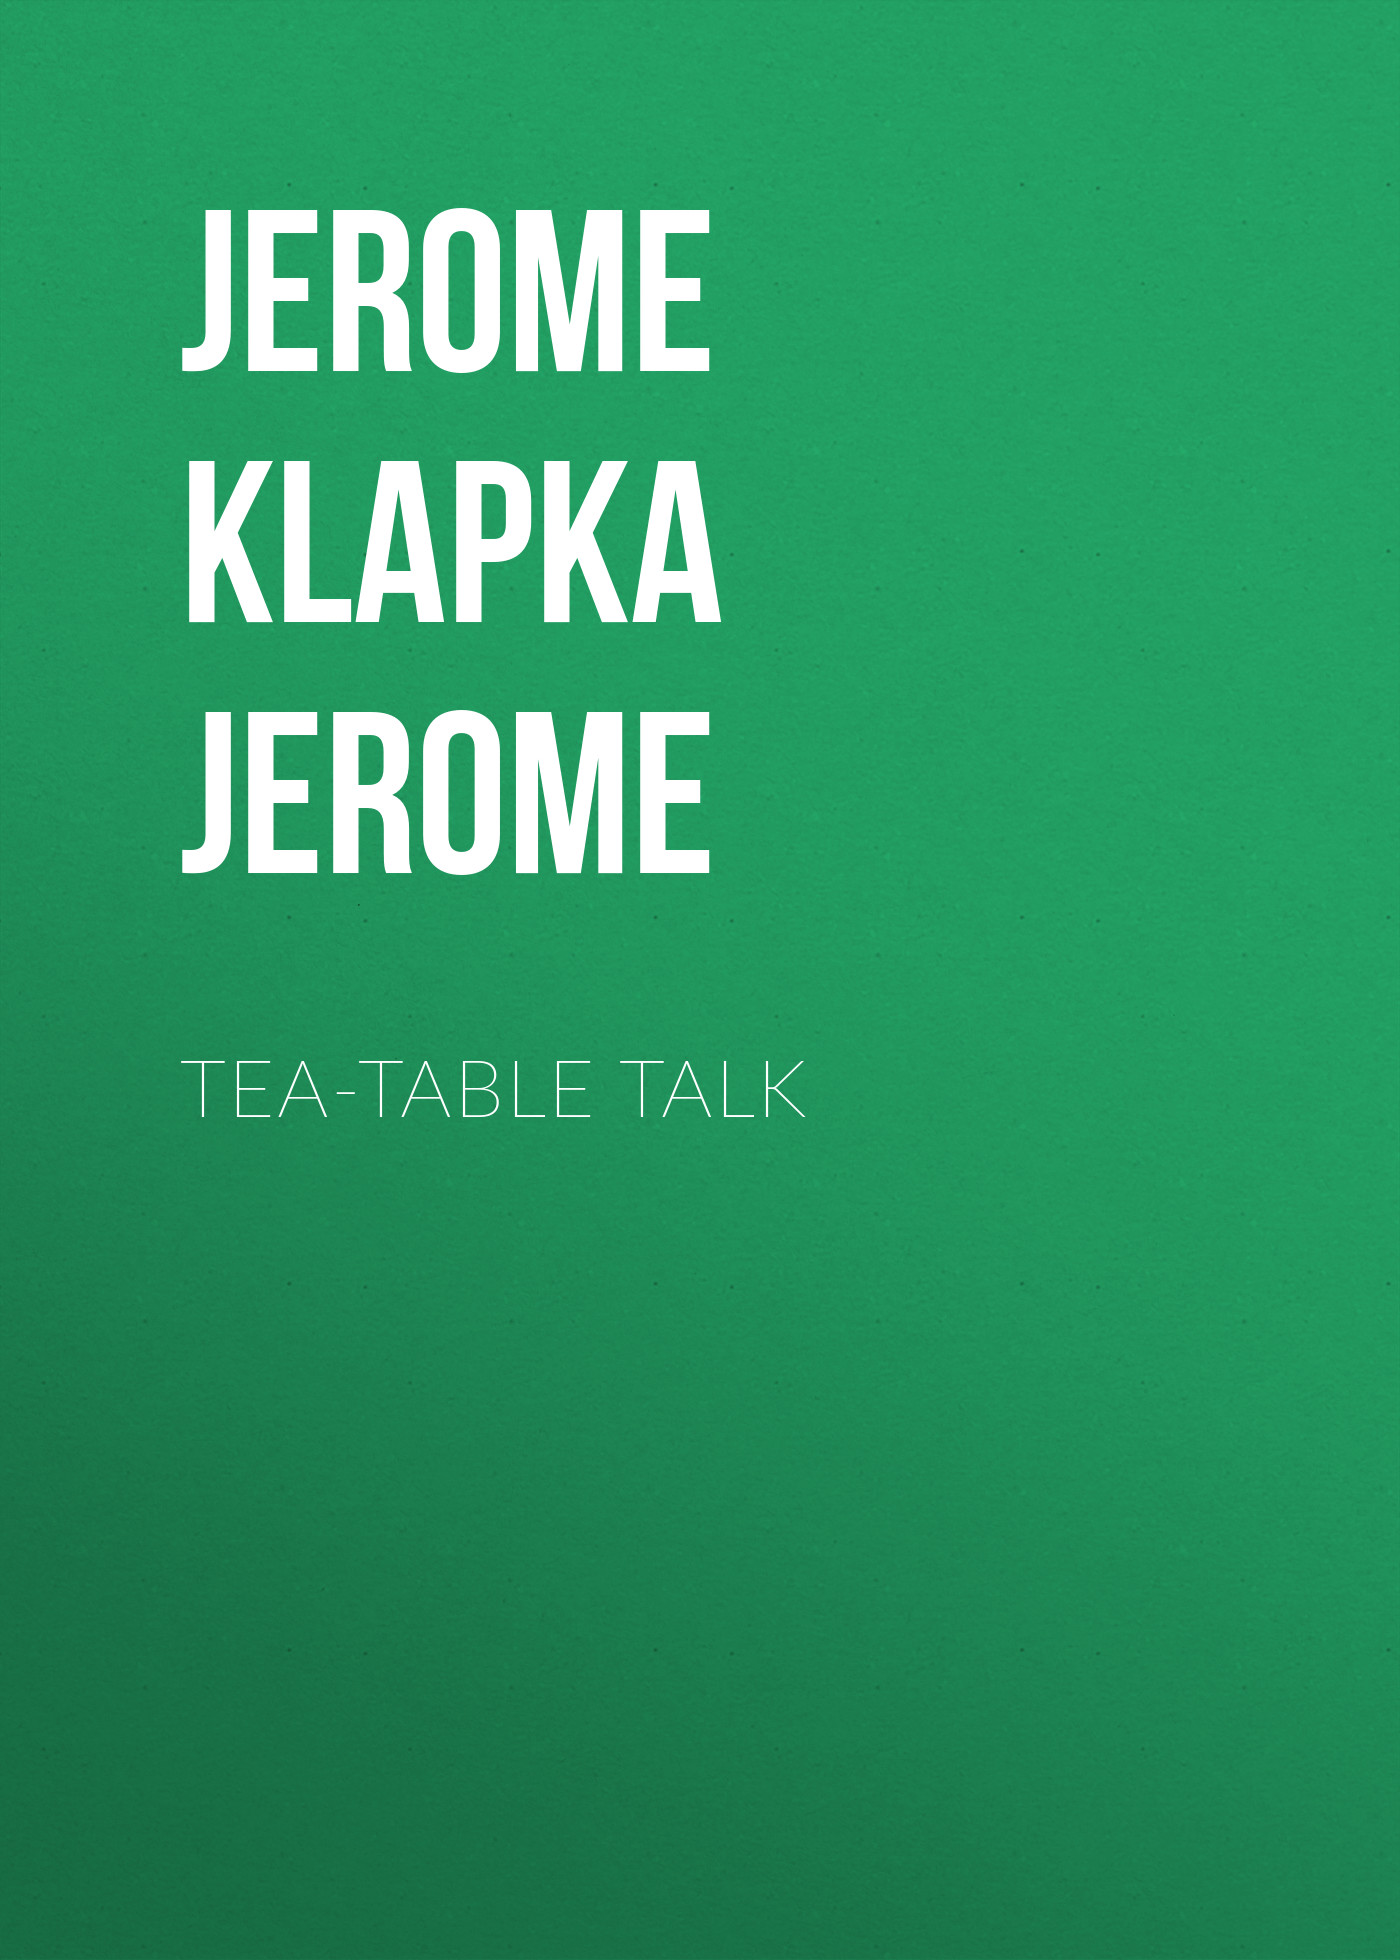 Джером Клапка Джером Tea-Table Talk джером клапка джером diary of a pilgrimage